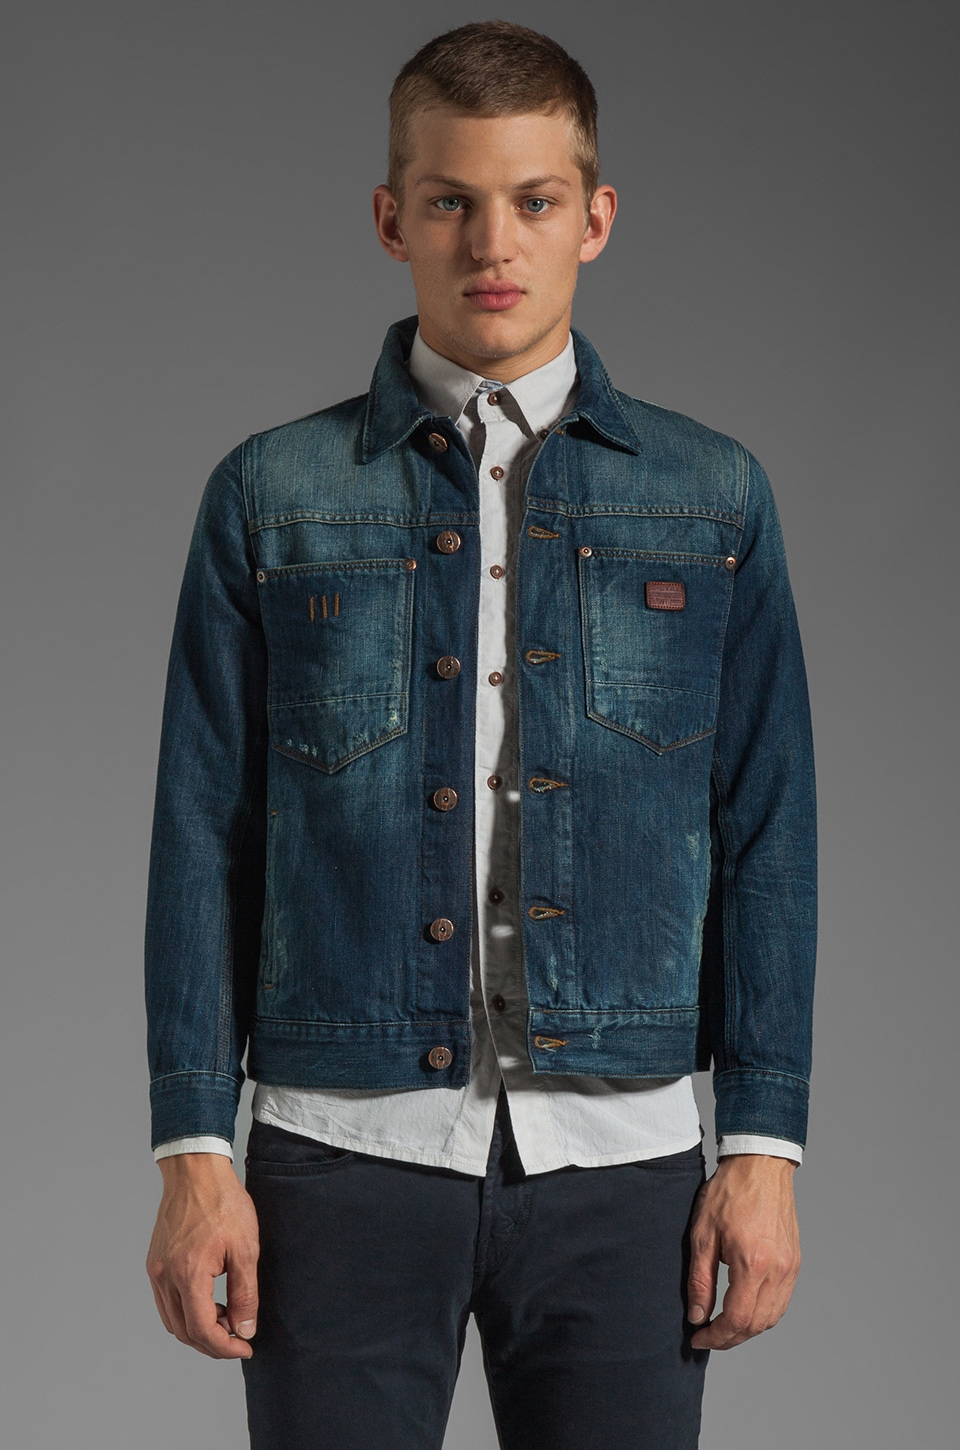 G-Star Ranch Denim Jacket in Medium Aged Destroy